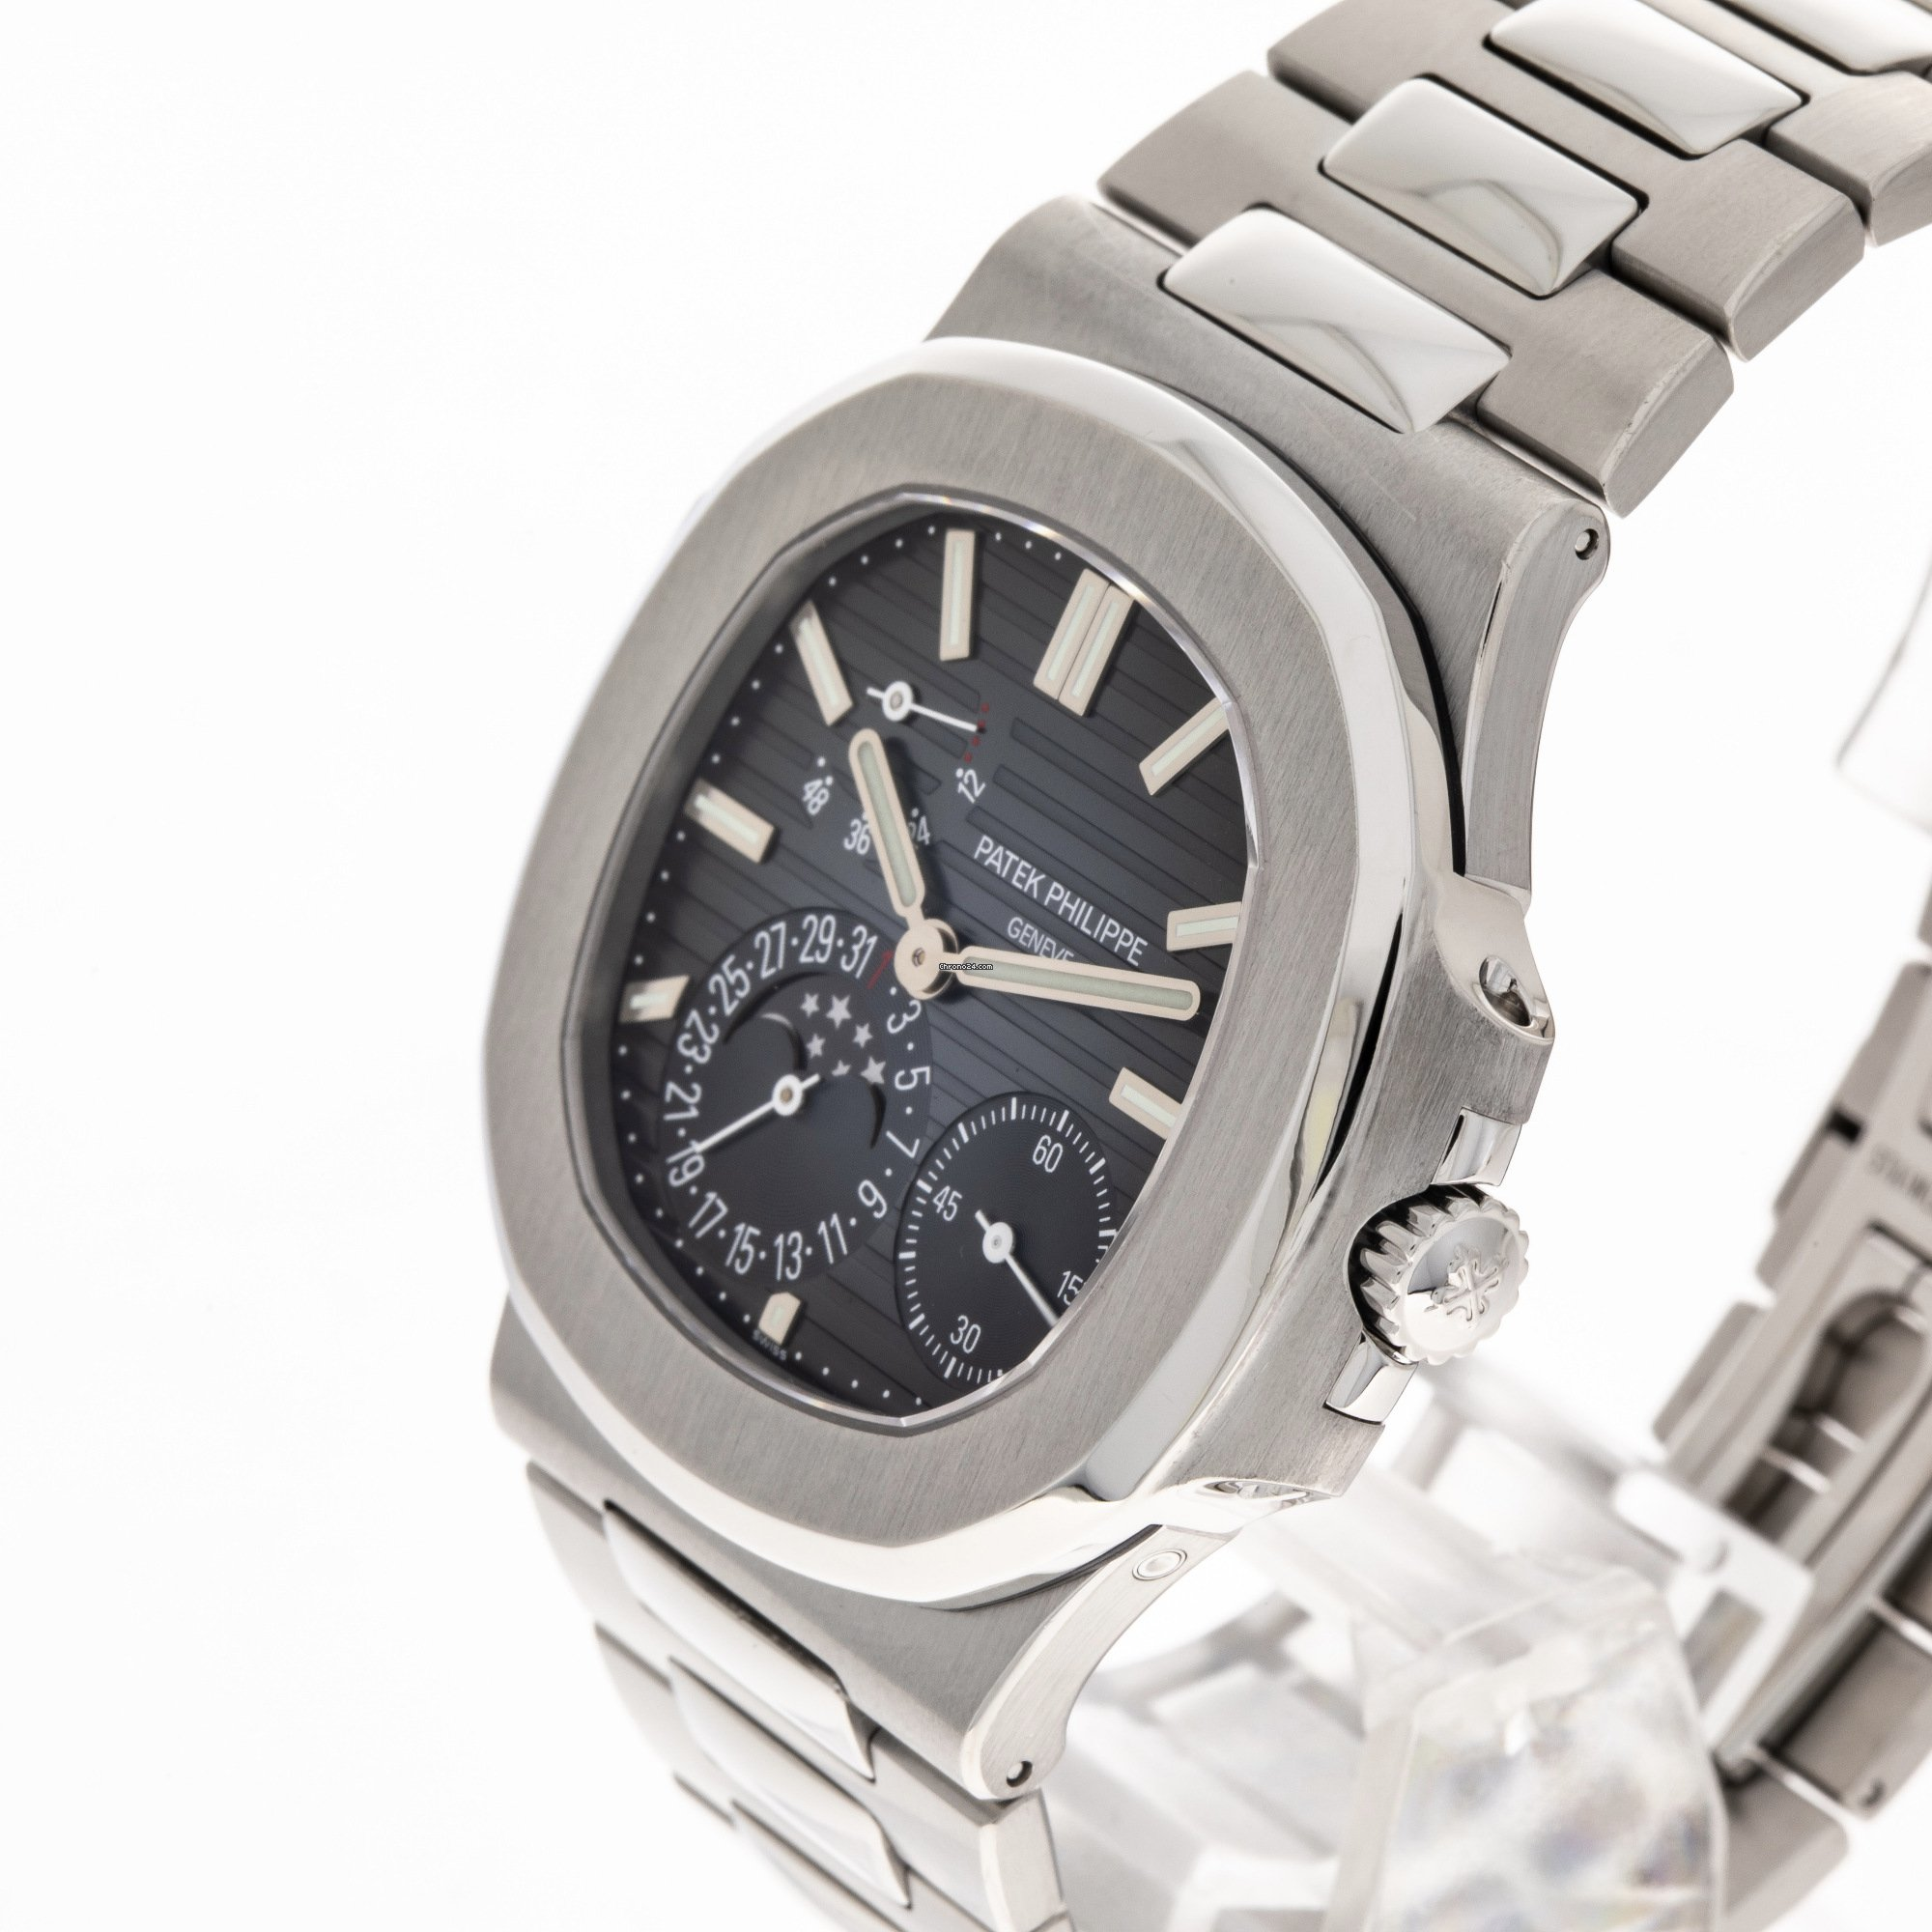 24682faa7b1 Patek Philippe Nautilus 5712 / 1A Steel Moonphase Power... for £74,276 for  sale from a Trusted Seller on Chrono24